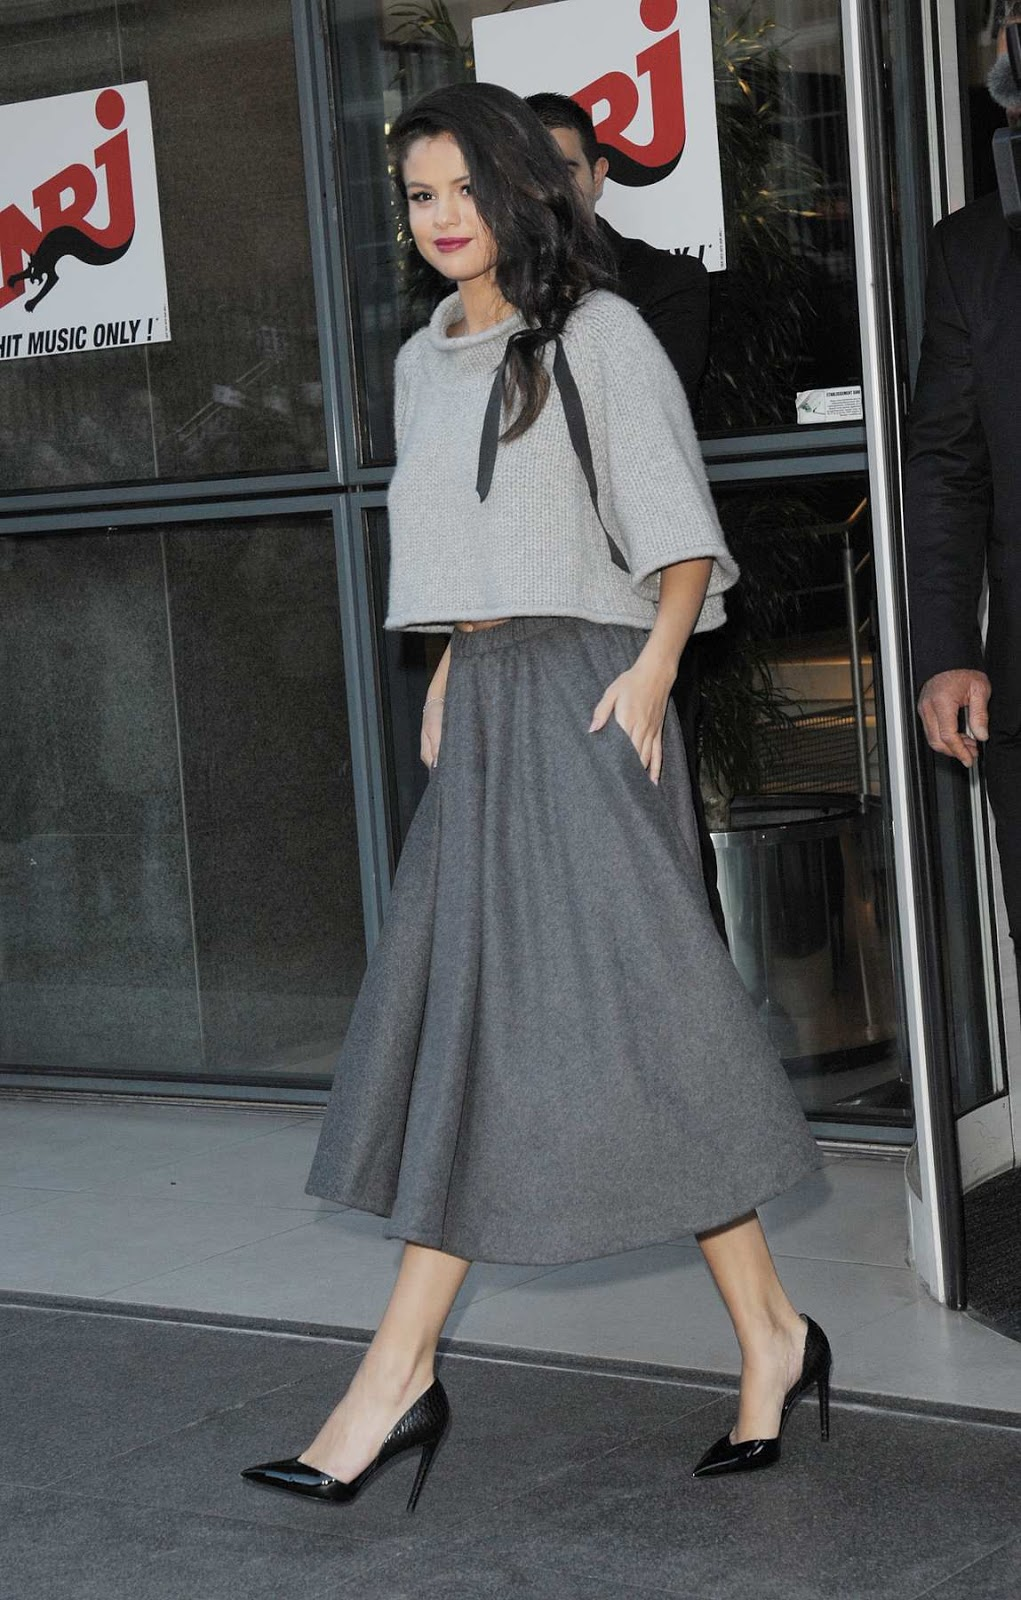 Selena Gomez in a skirt out and about in Paris